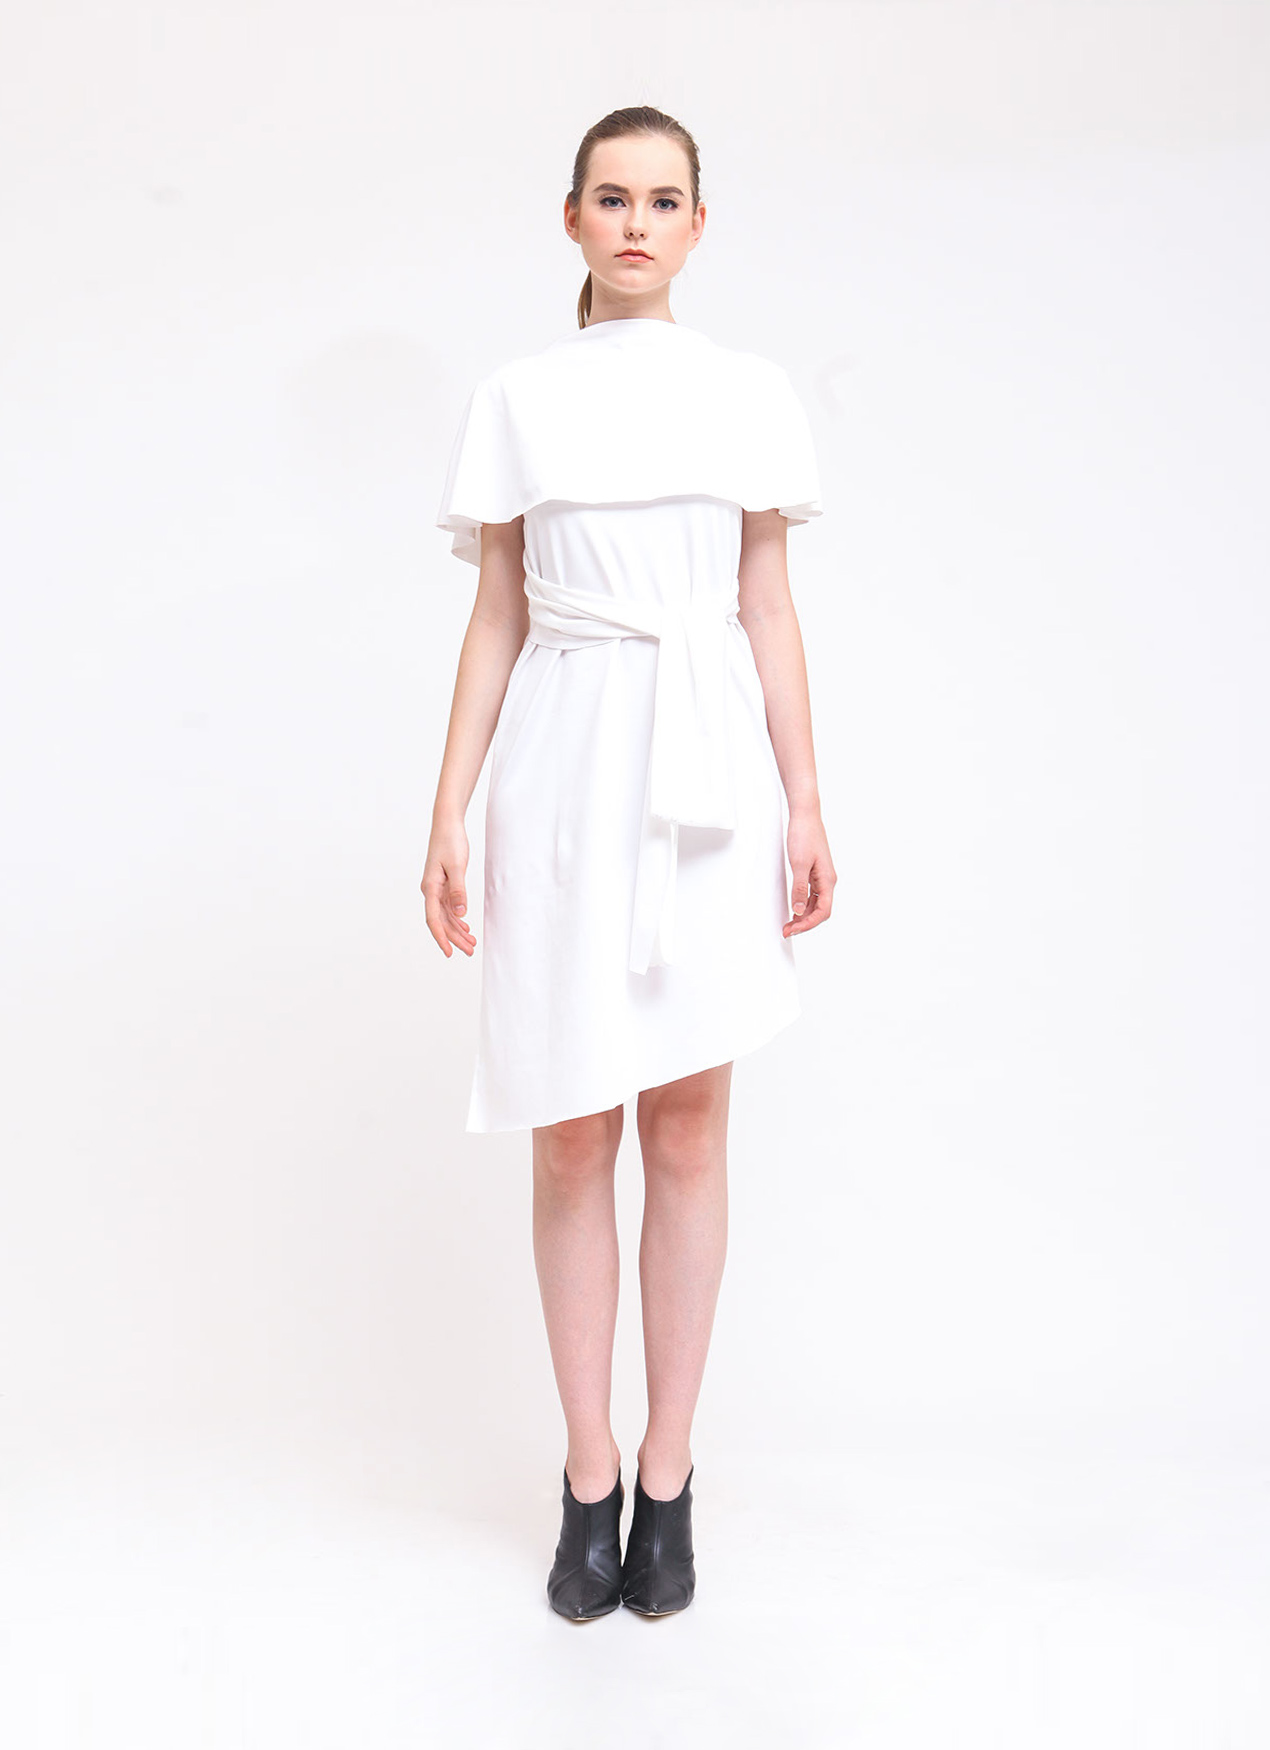 71da79de96b Anynome White Audrey Multiway Dress  Anynome White Audrey Multiway Dress ...